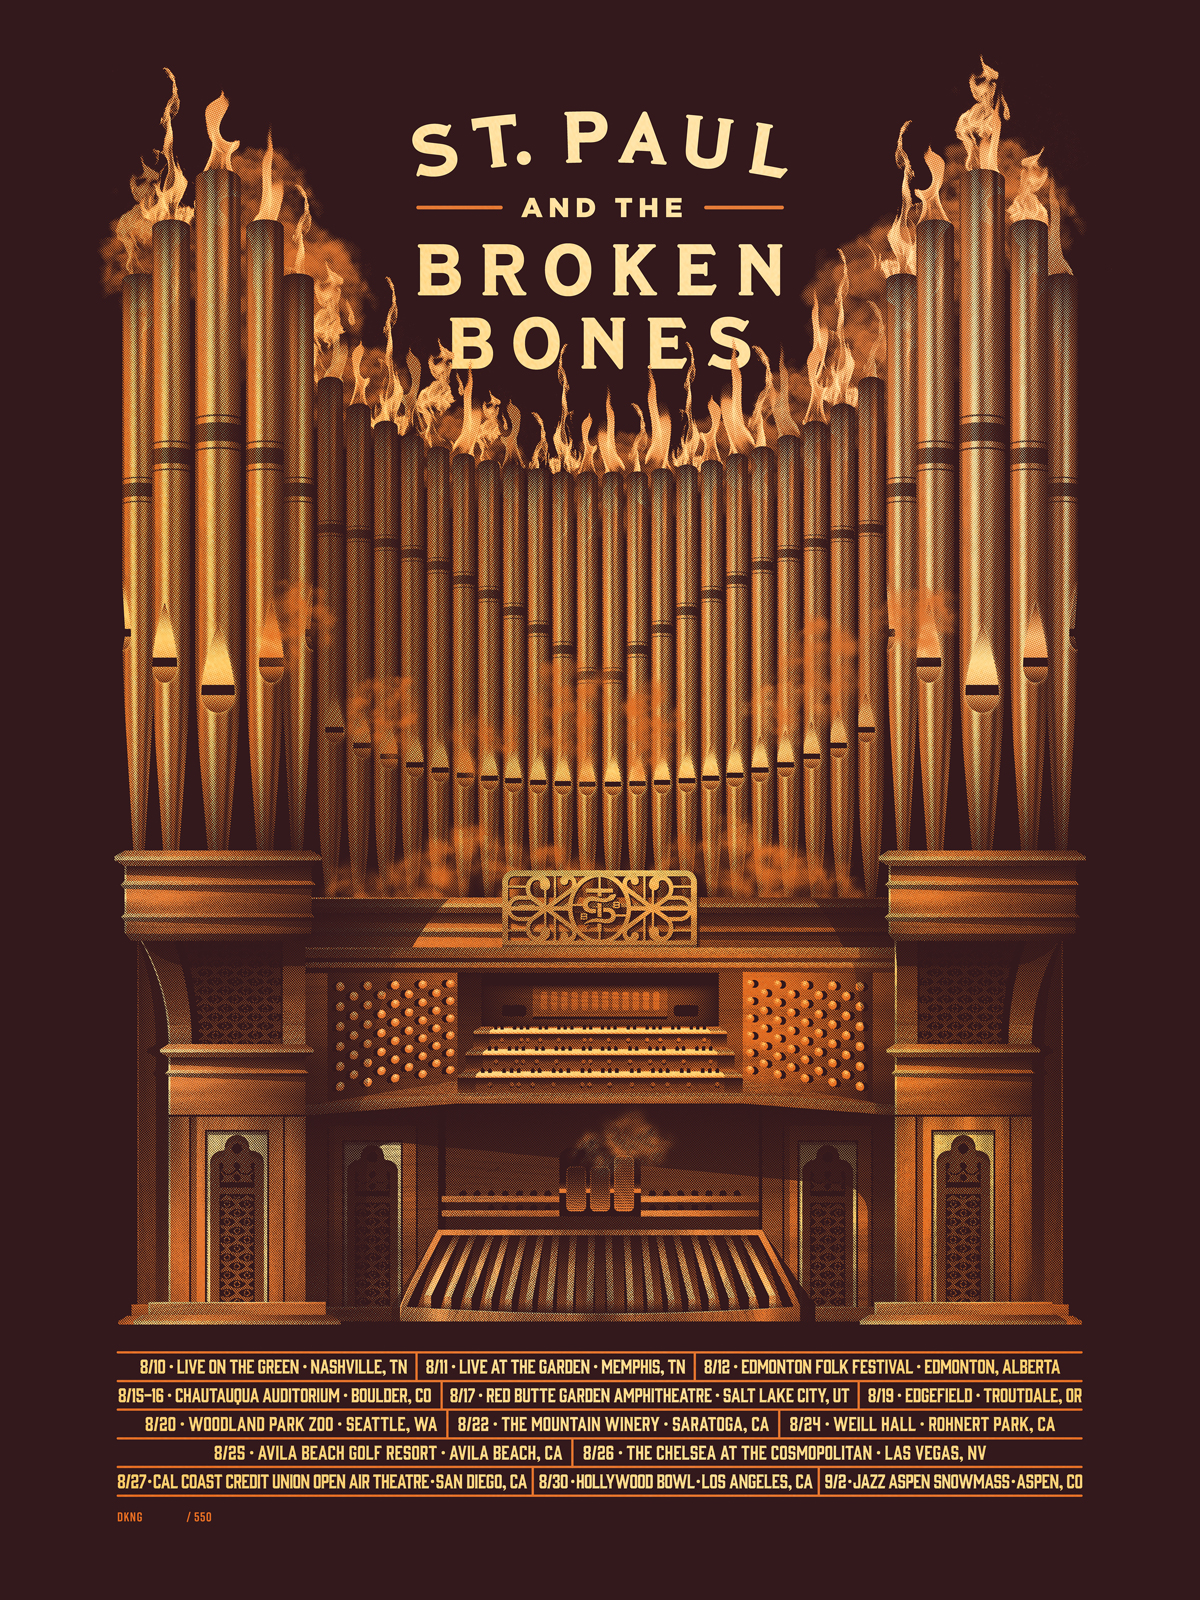 St. Paul & the Broken Bones poster by DKNG